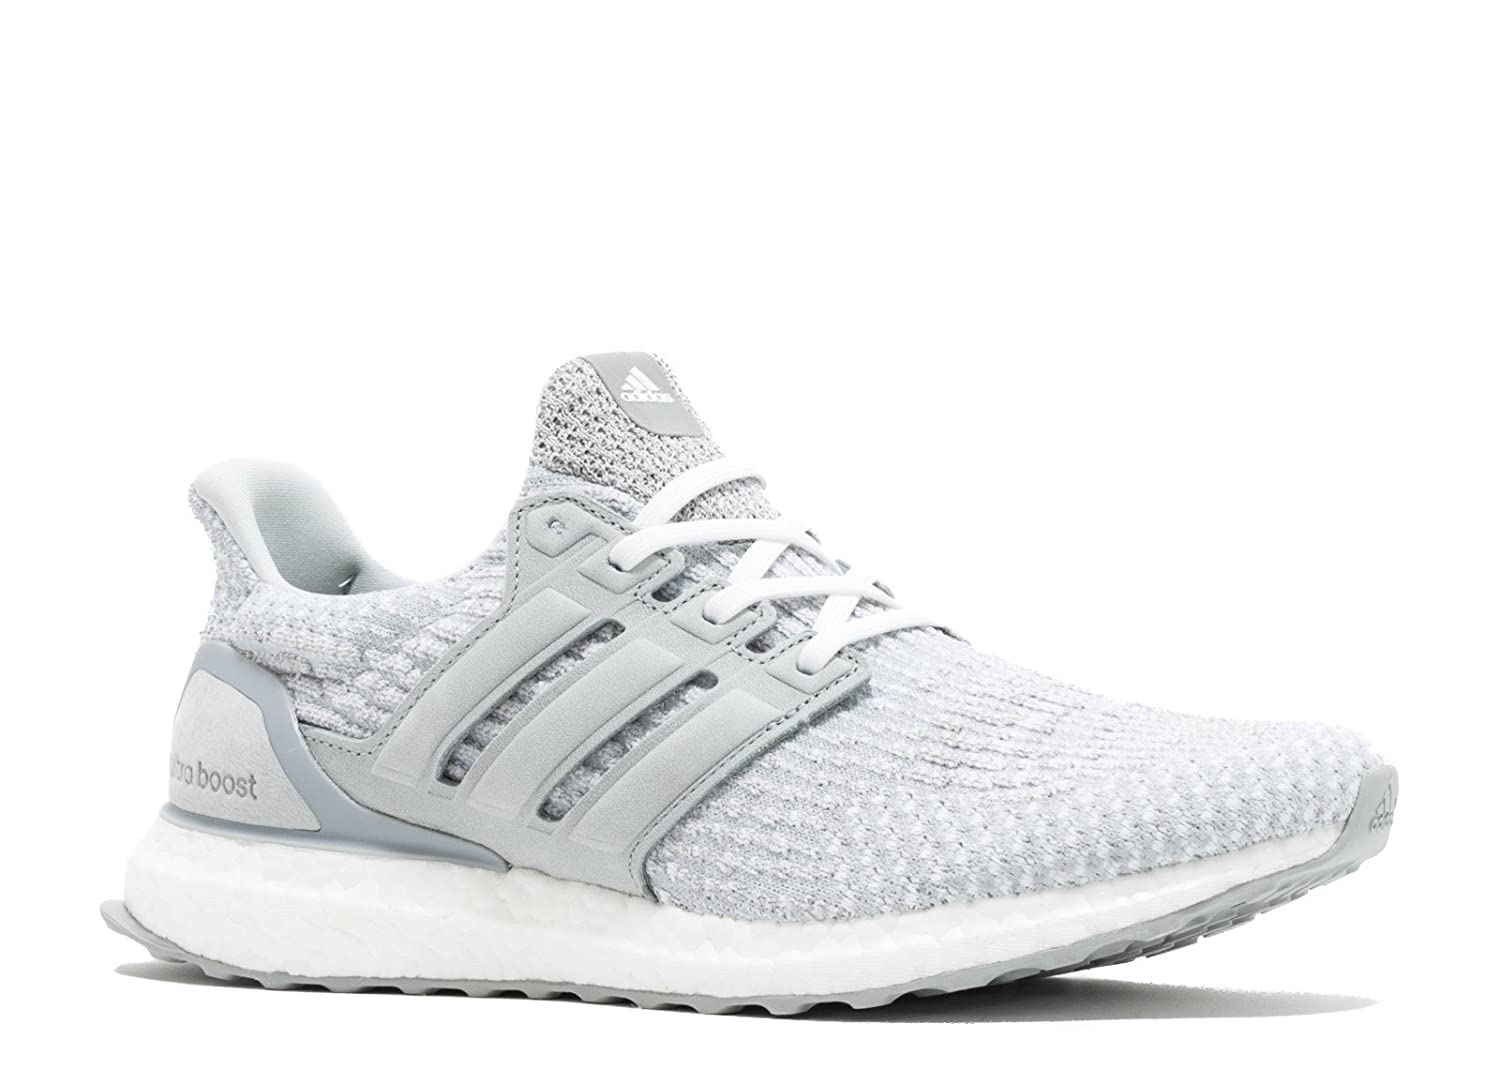 los angeles d97a7 1837a Amazon.com: adidas Ultraboost W (Reigning Champ): Shoes